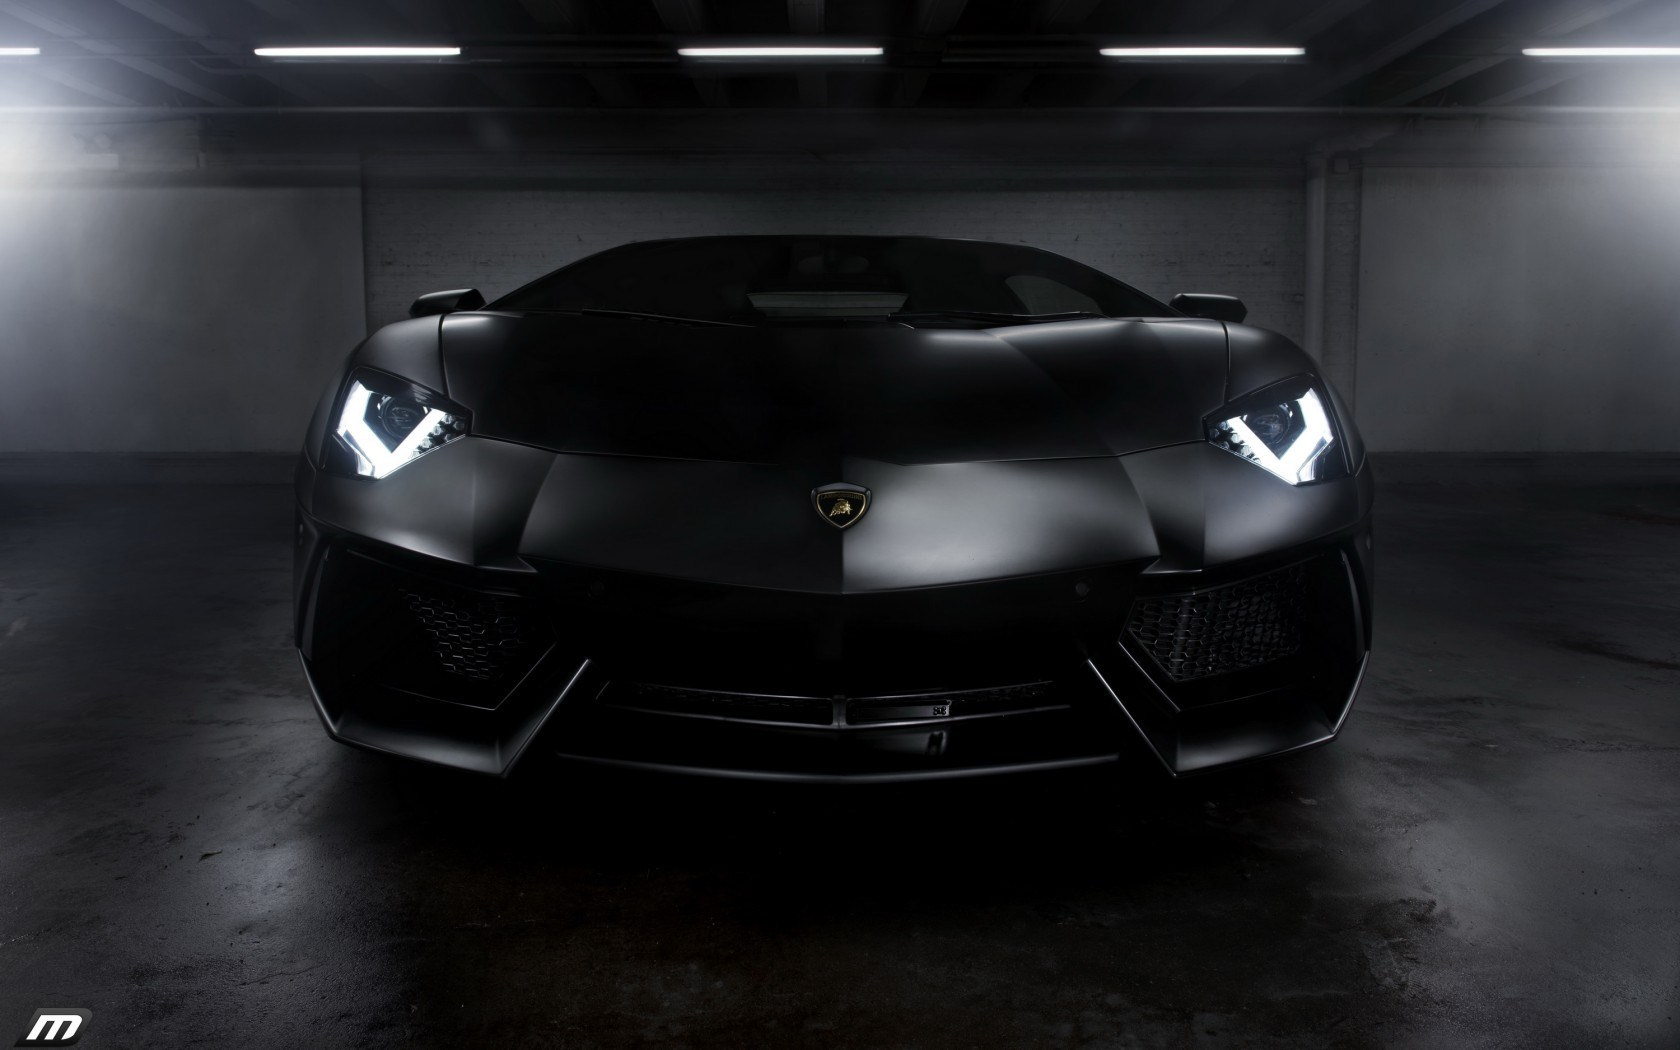 Garage Lamborghini Aventador Lights